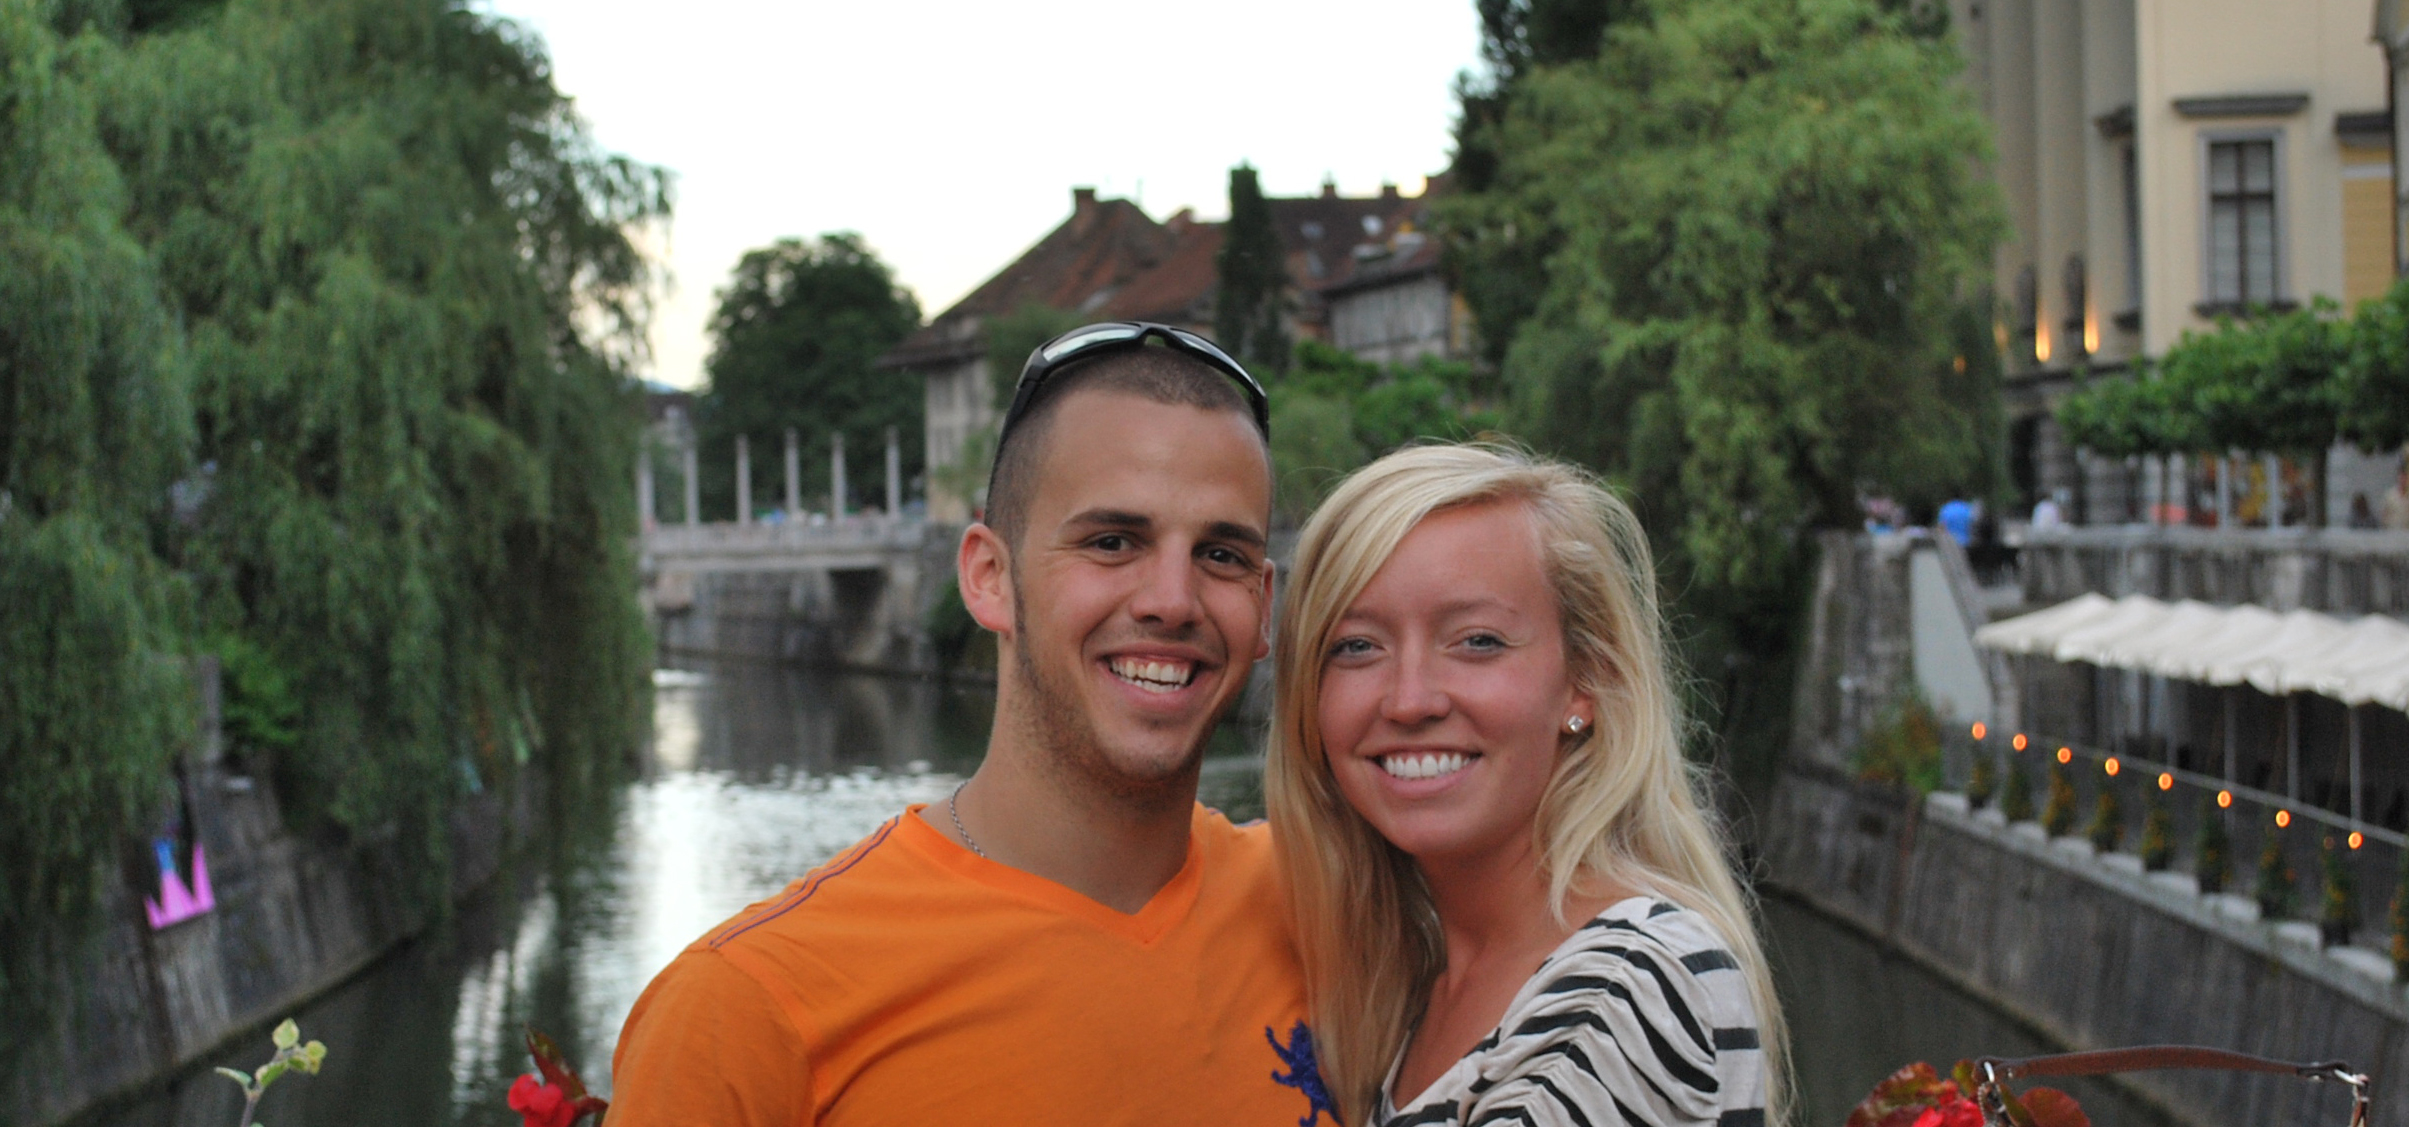 Our first time to Slovenia in 2010, in the center of Ljubljana.